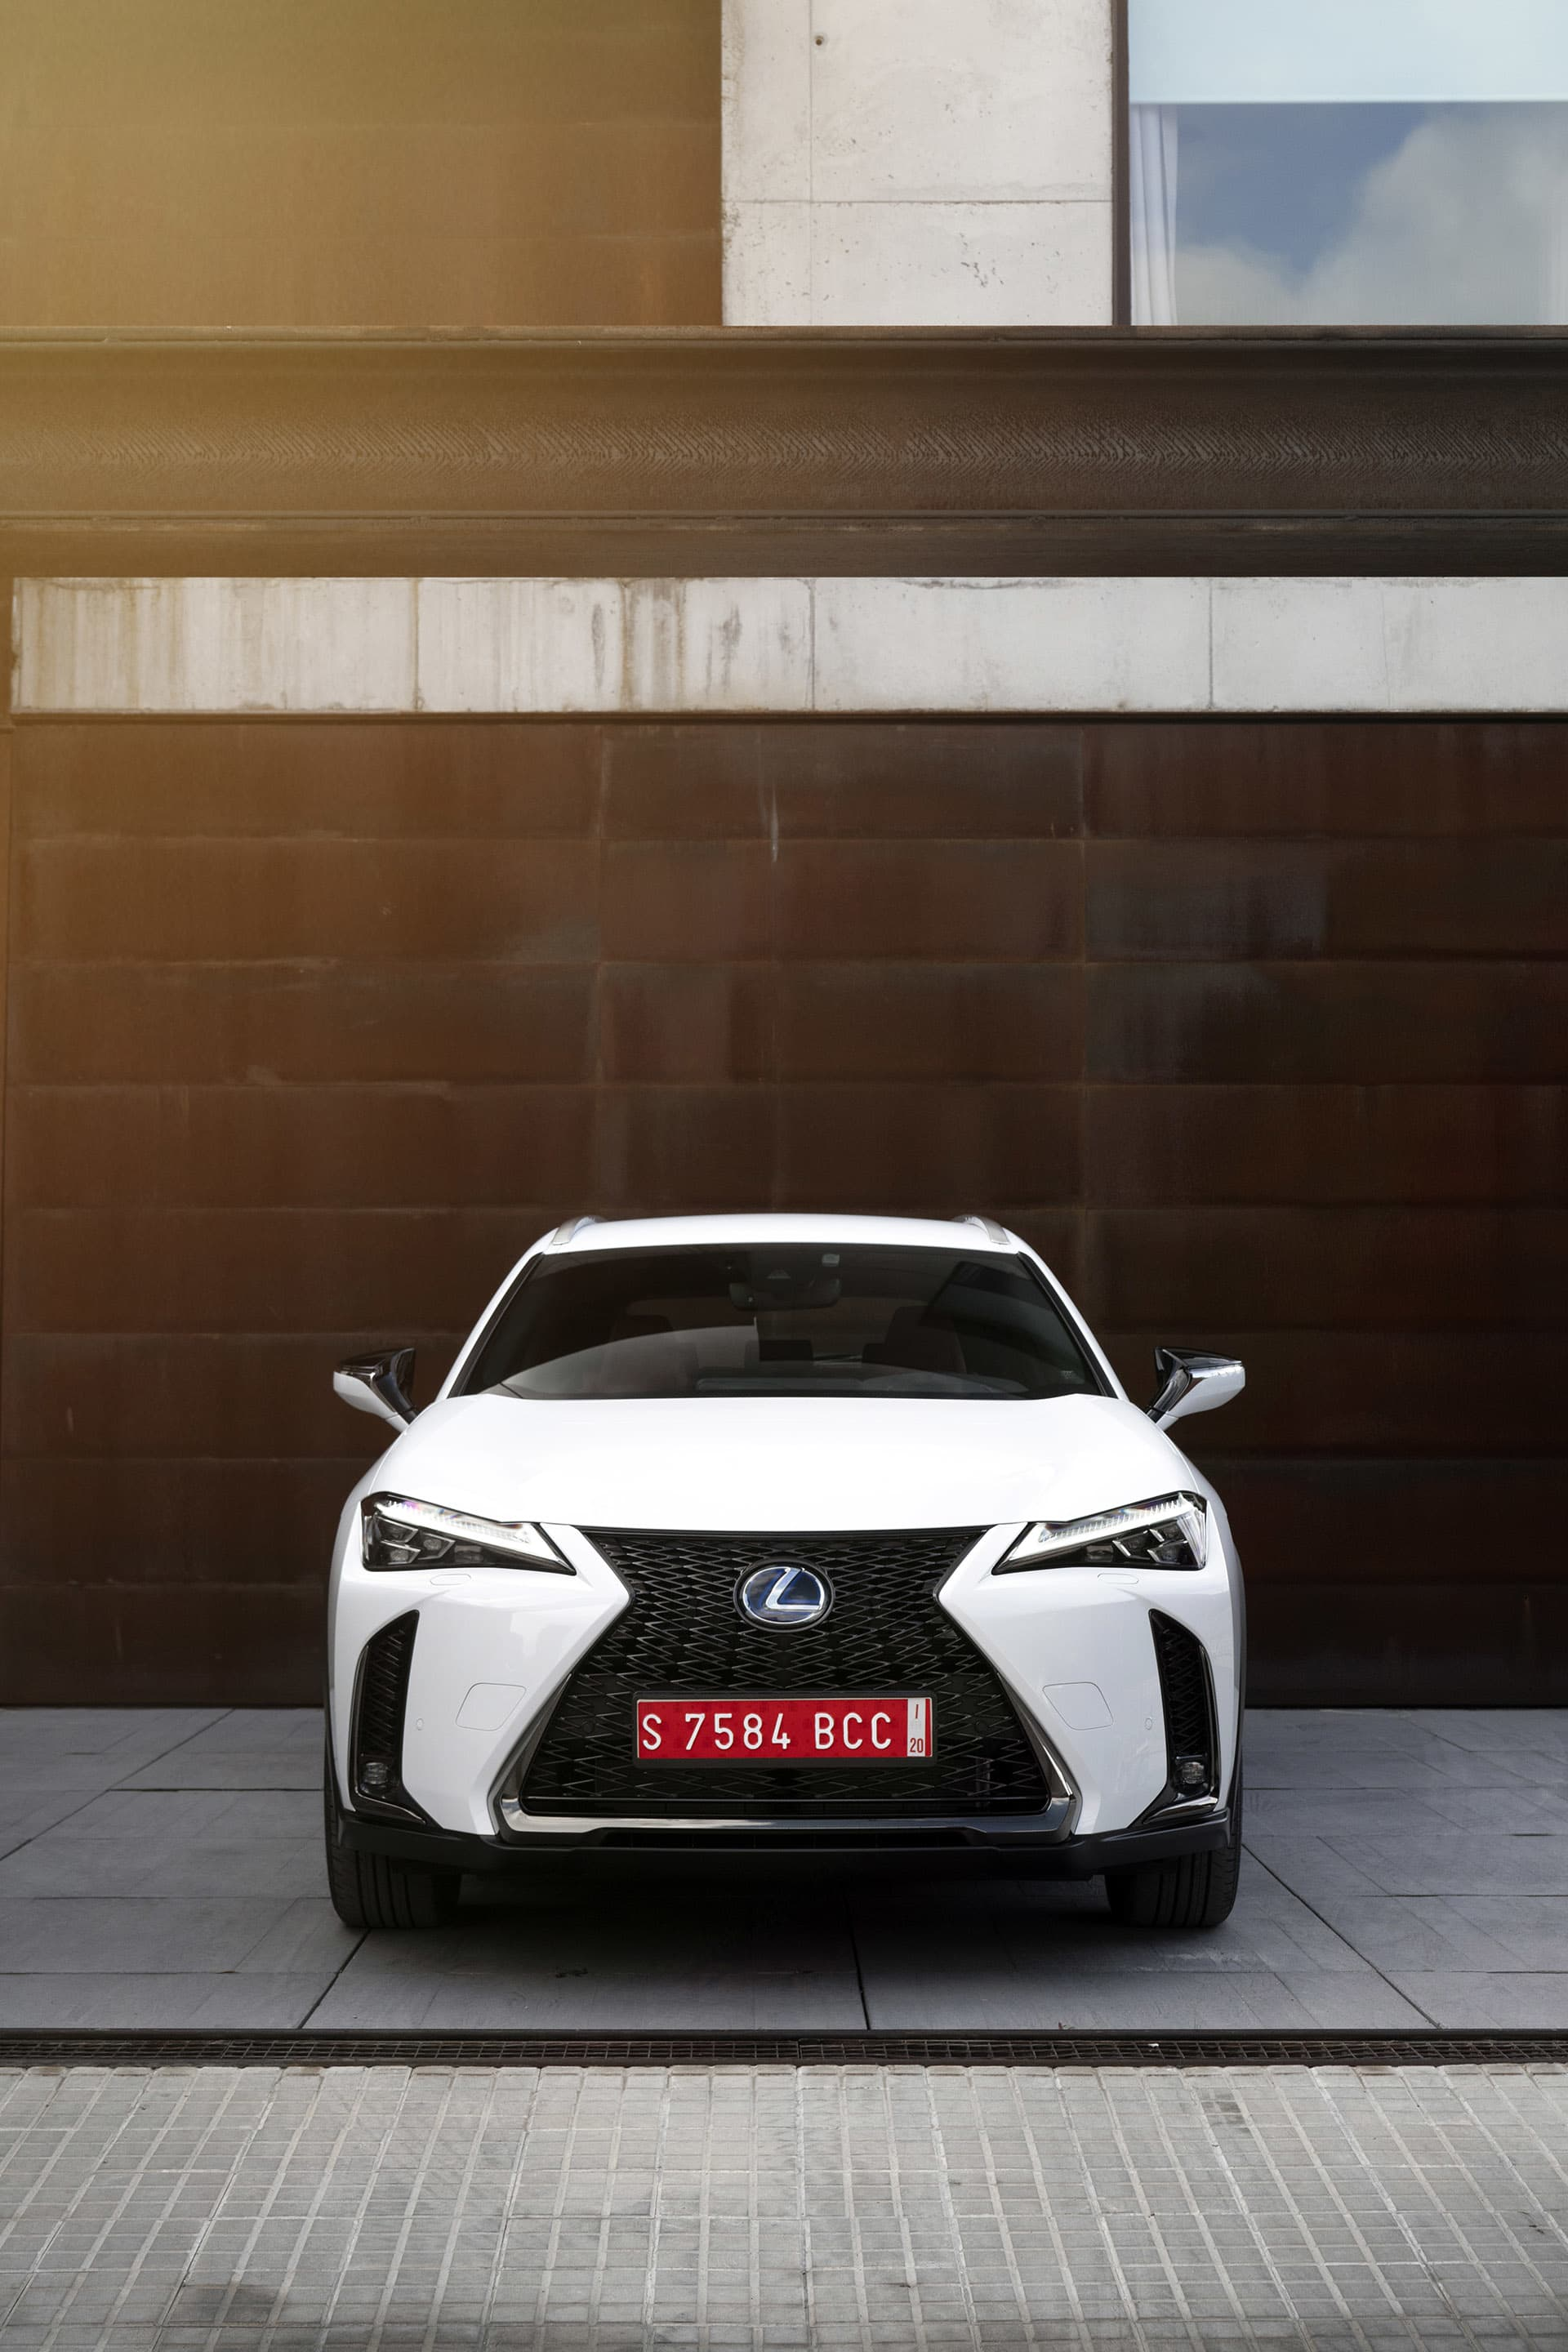 The photographs of the Lexus UX 250h were taken outside Studio Sitges, a photo studio suitable for both advertising, fashion and car photography (studiositges.com).